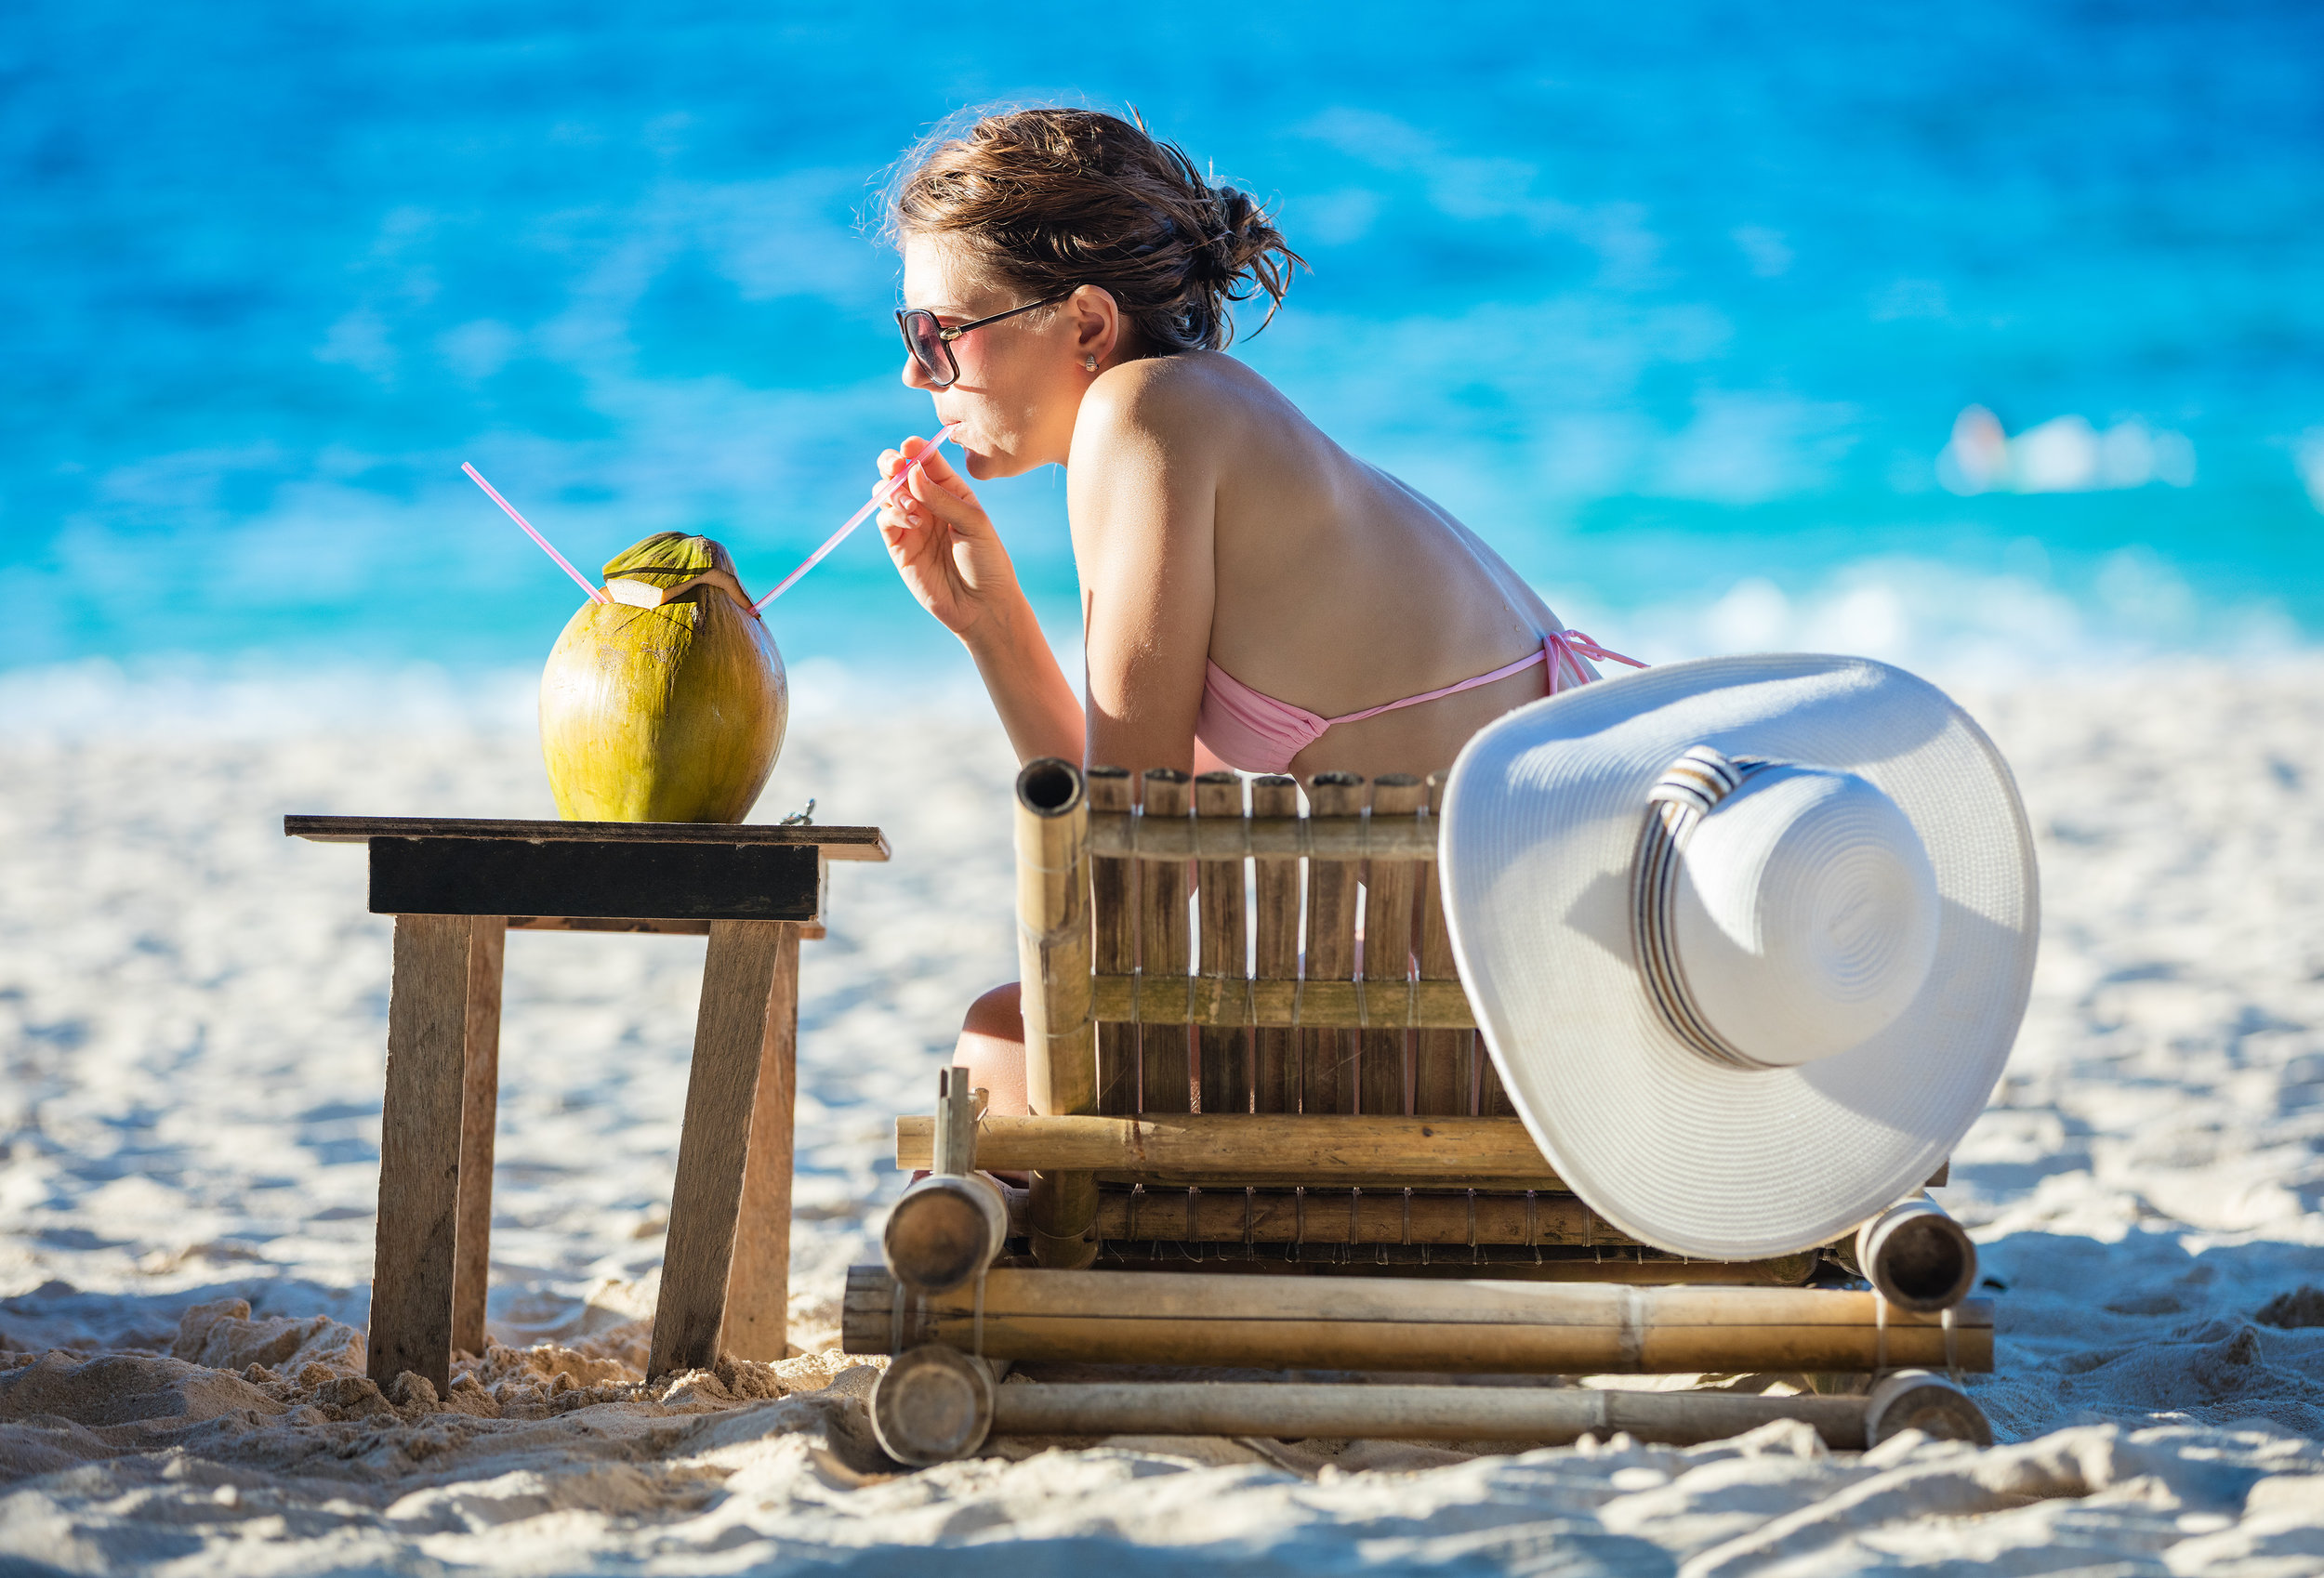 young-woman-drinking-coconut-juice-while-relaxing-PWARWFQ.jpg